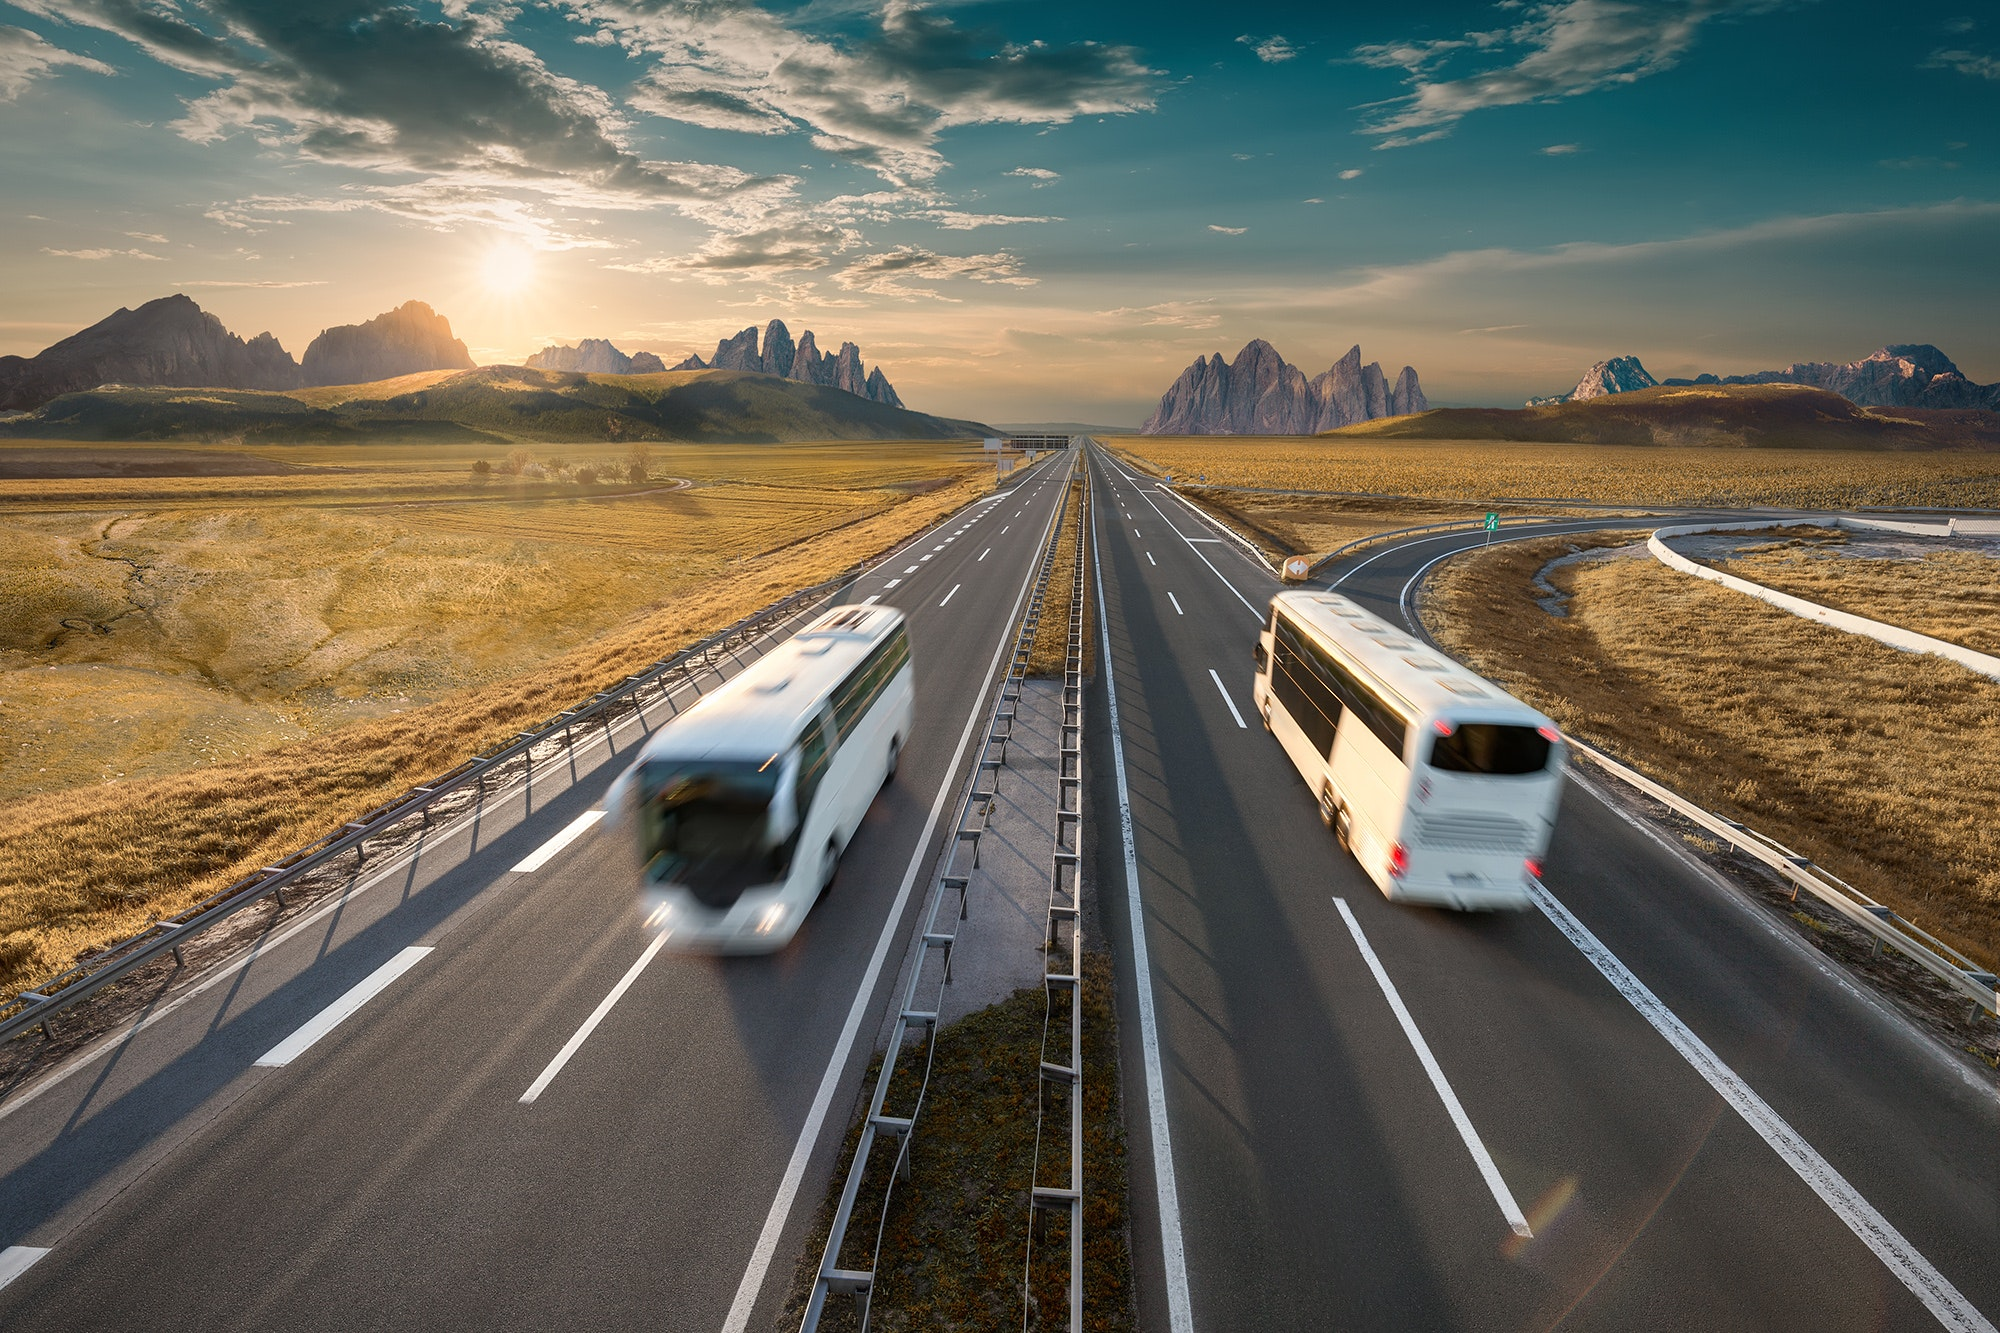 2019 might be the year you reconsider bus travel.